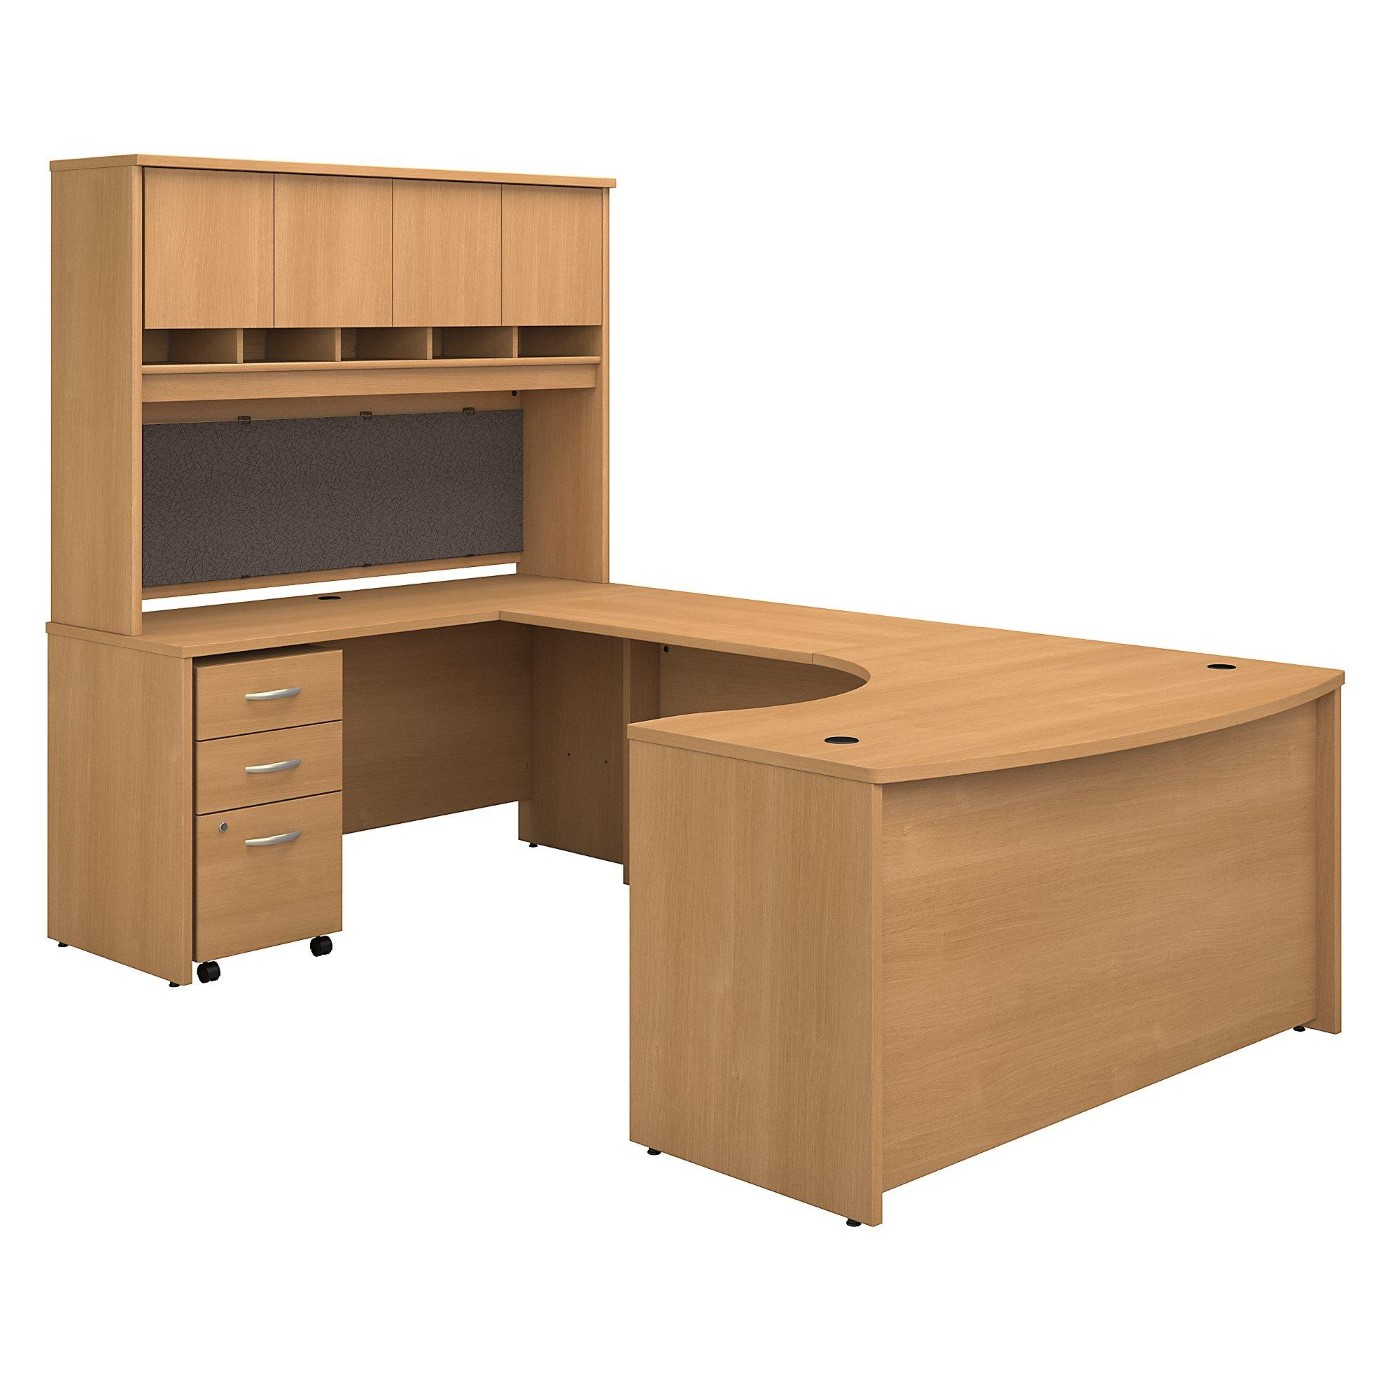 BUSH BUSINESS FURNITURE SERIES C 60W RIGHT HANDED BOW FRONT U SHAPED DESK WITH HUTCH AND STORAGE. FREE SHIPPING</font></b></font>&#x1F384<font color=red><b>ERGONOMICHOME HOLIDAY SALE - ENDS DEC. 17, 2019</b></font>&#x1F384